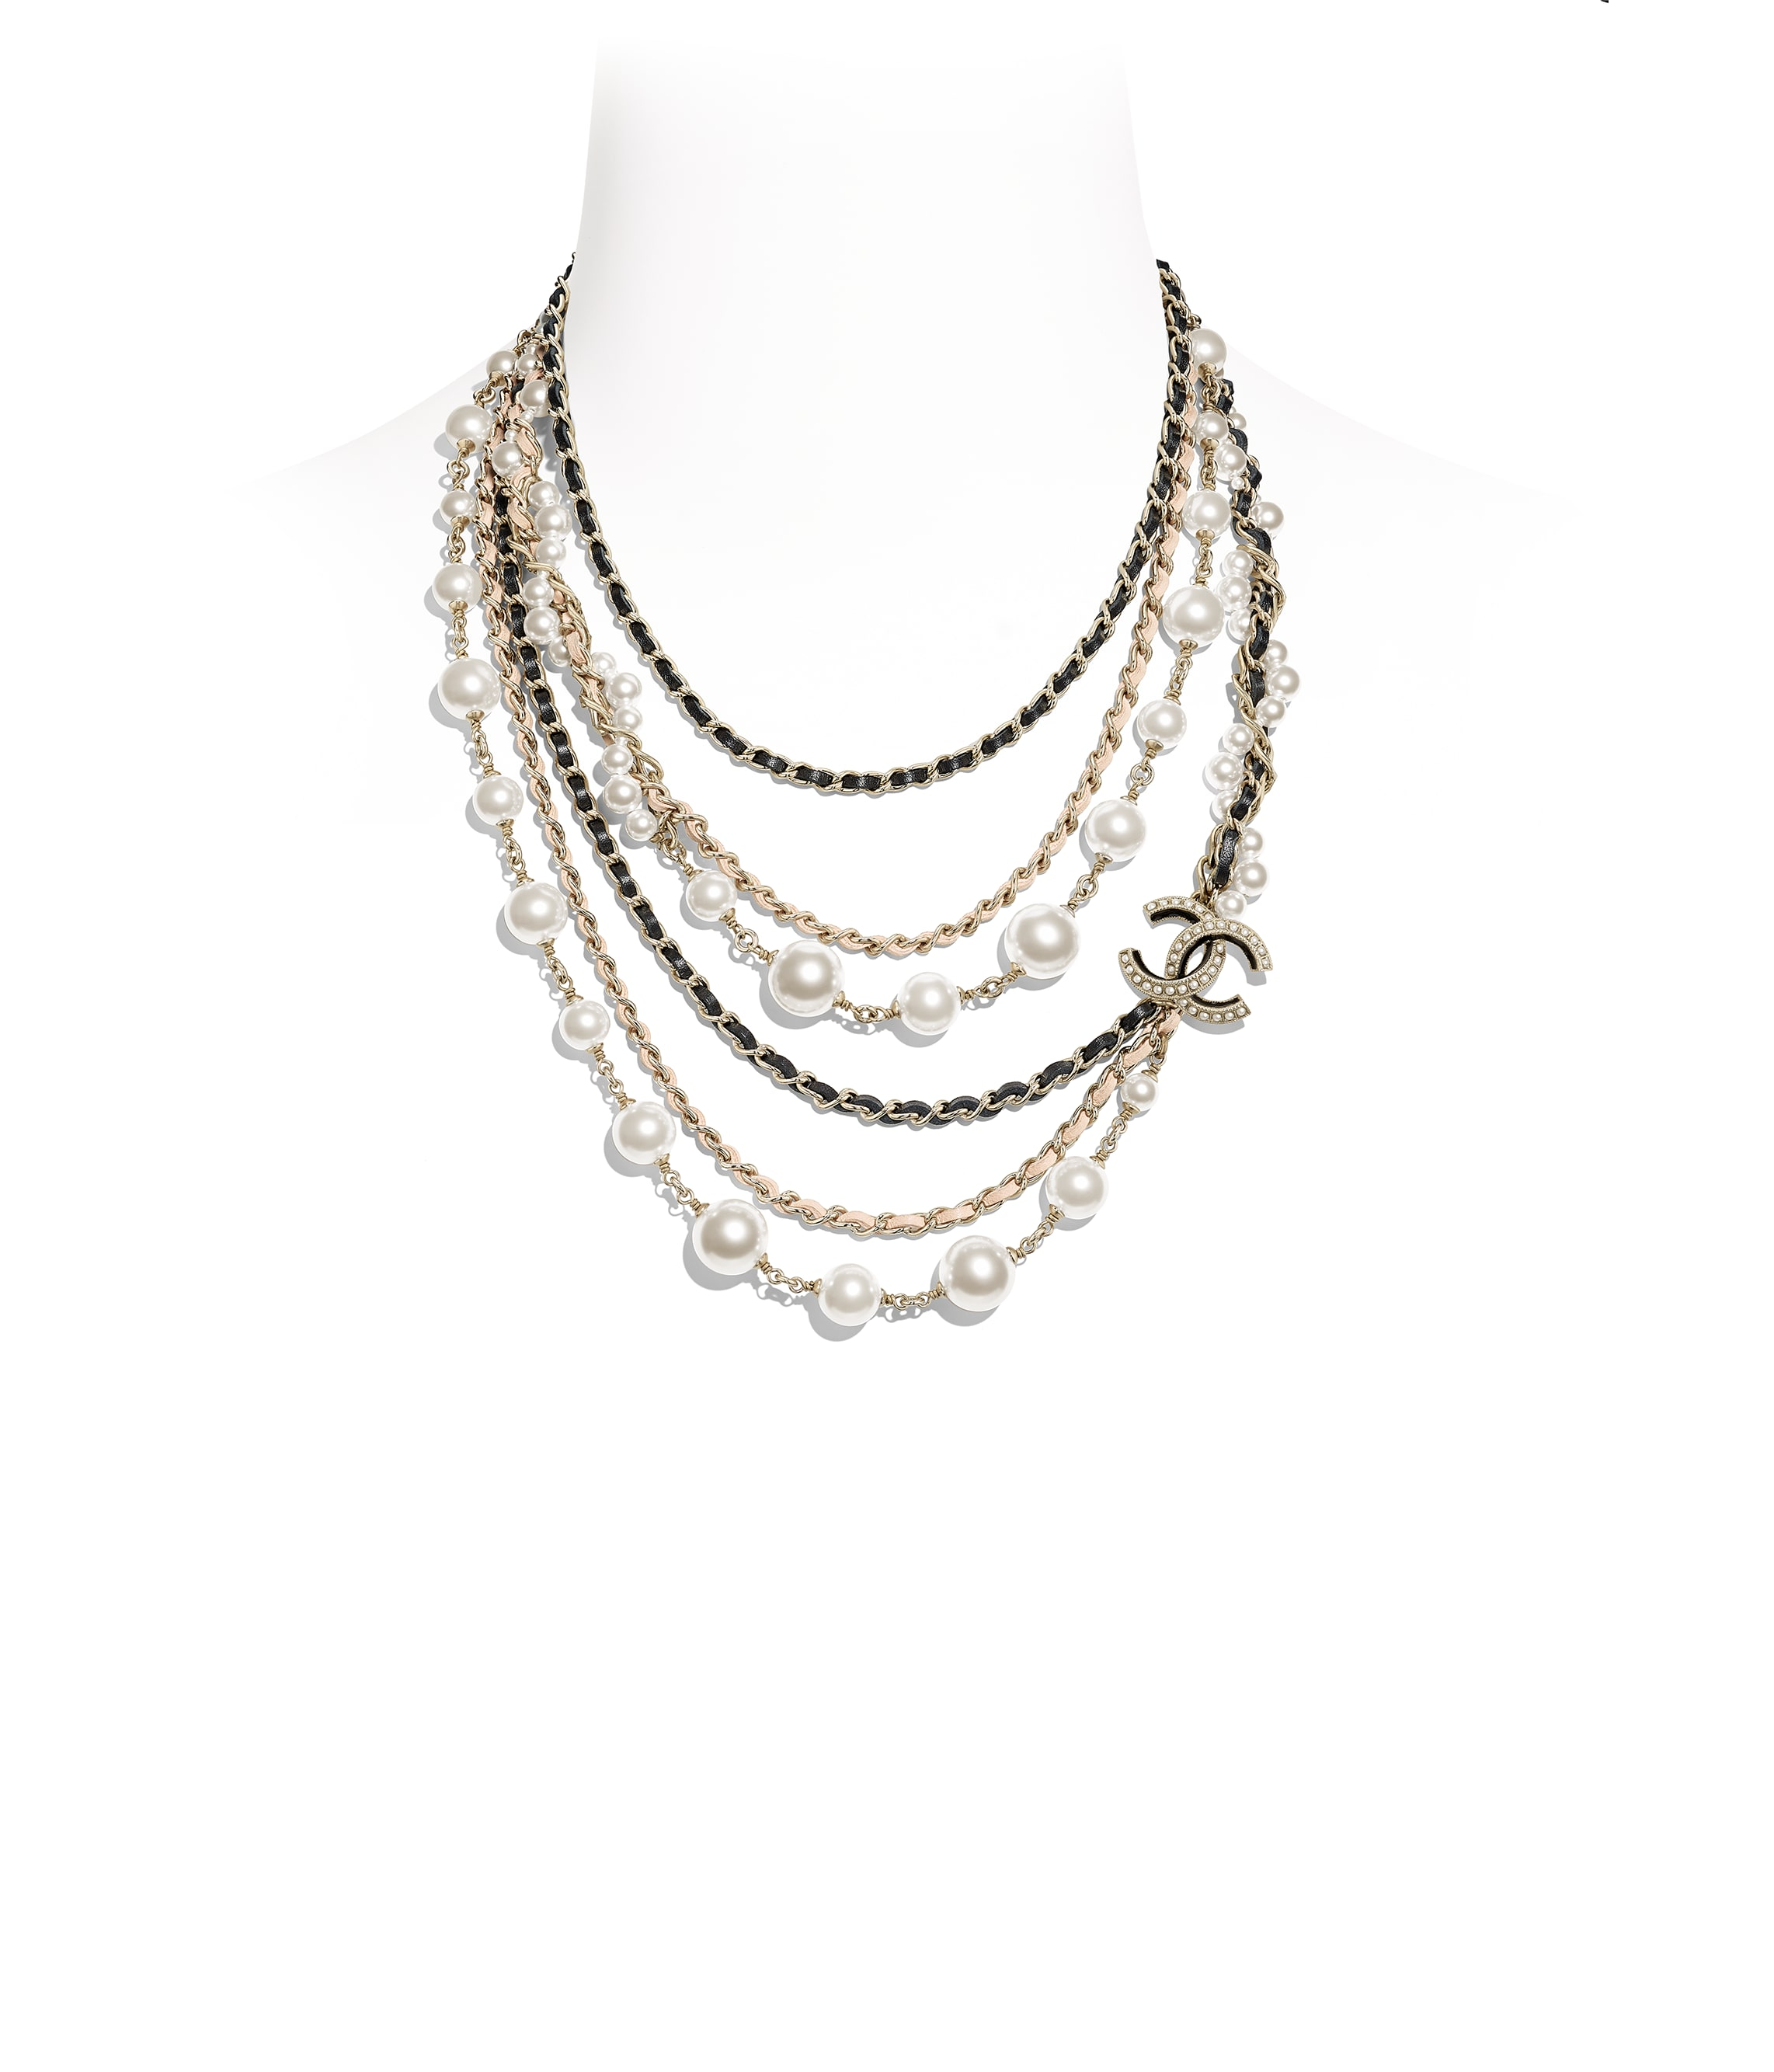 bb777966a7727 Necklaces - Costume Jewelry - CHANEL